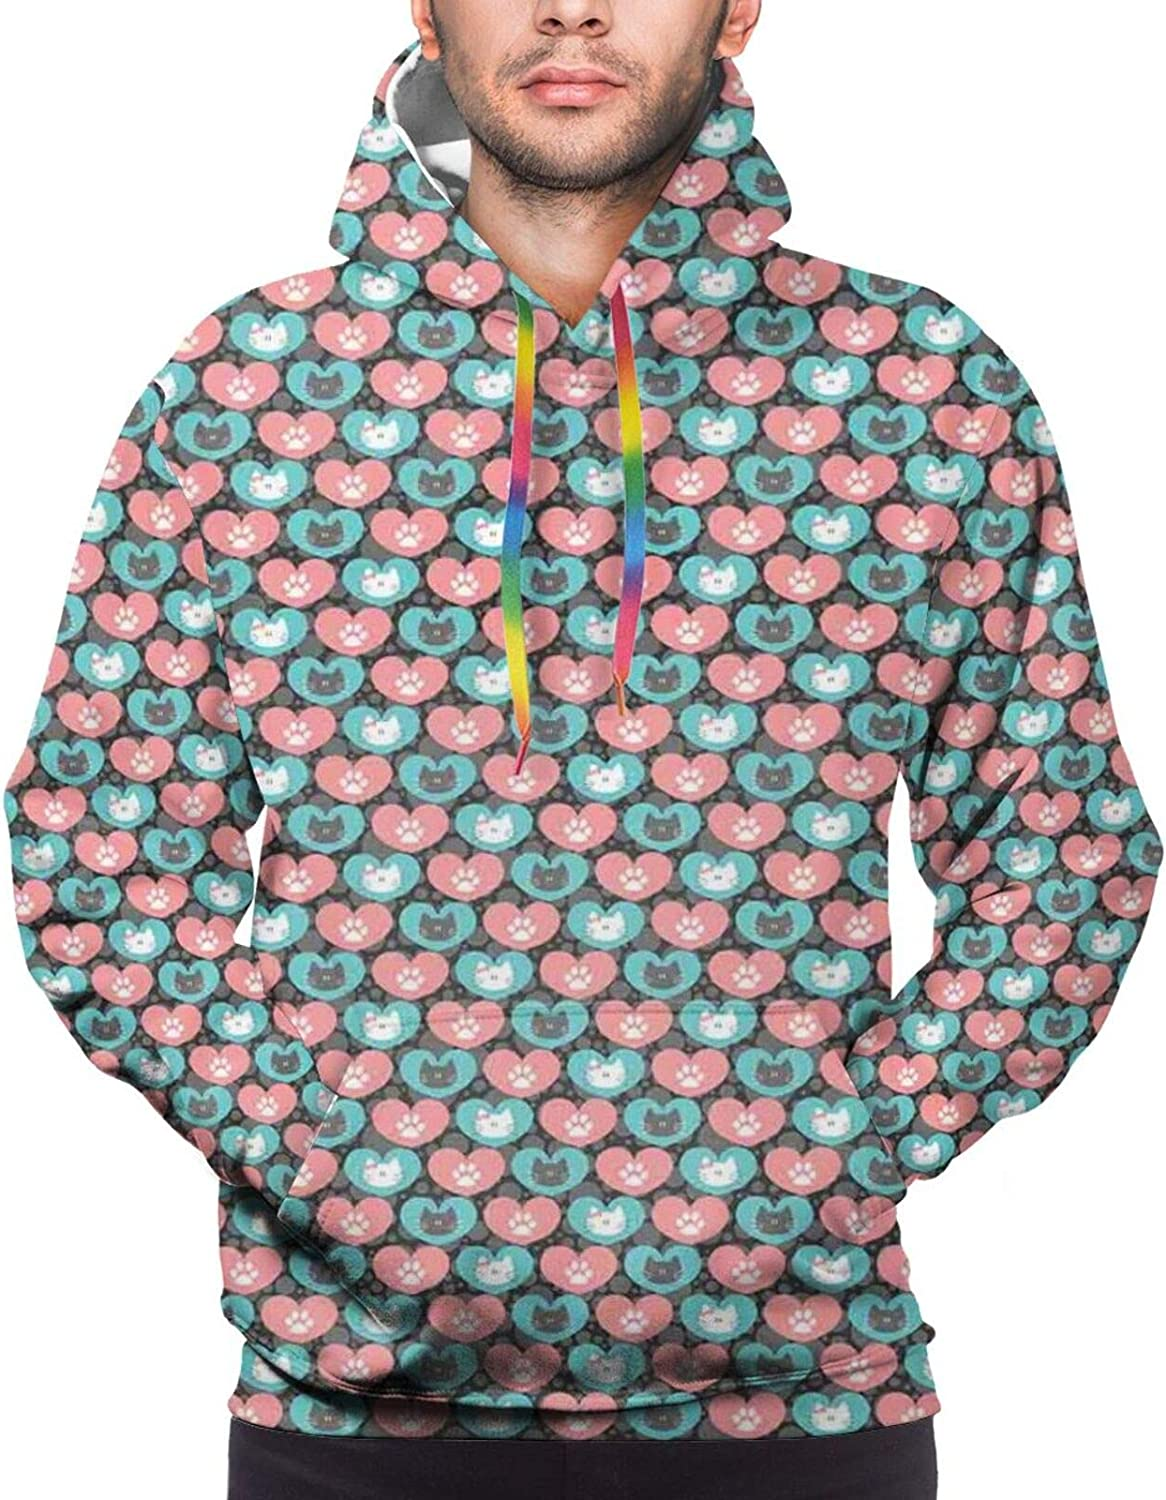 Men's Hoodies Sweatshirts,Cute Cat Faces with Dotted Whiskers Kittens Animals Kids Nursery Theme Picture